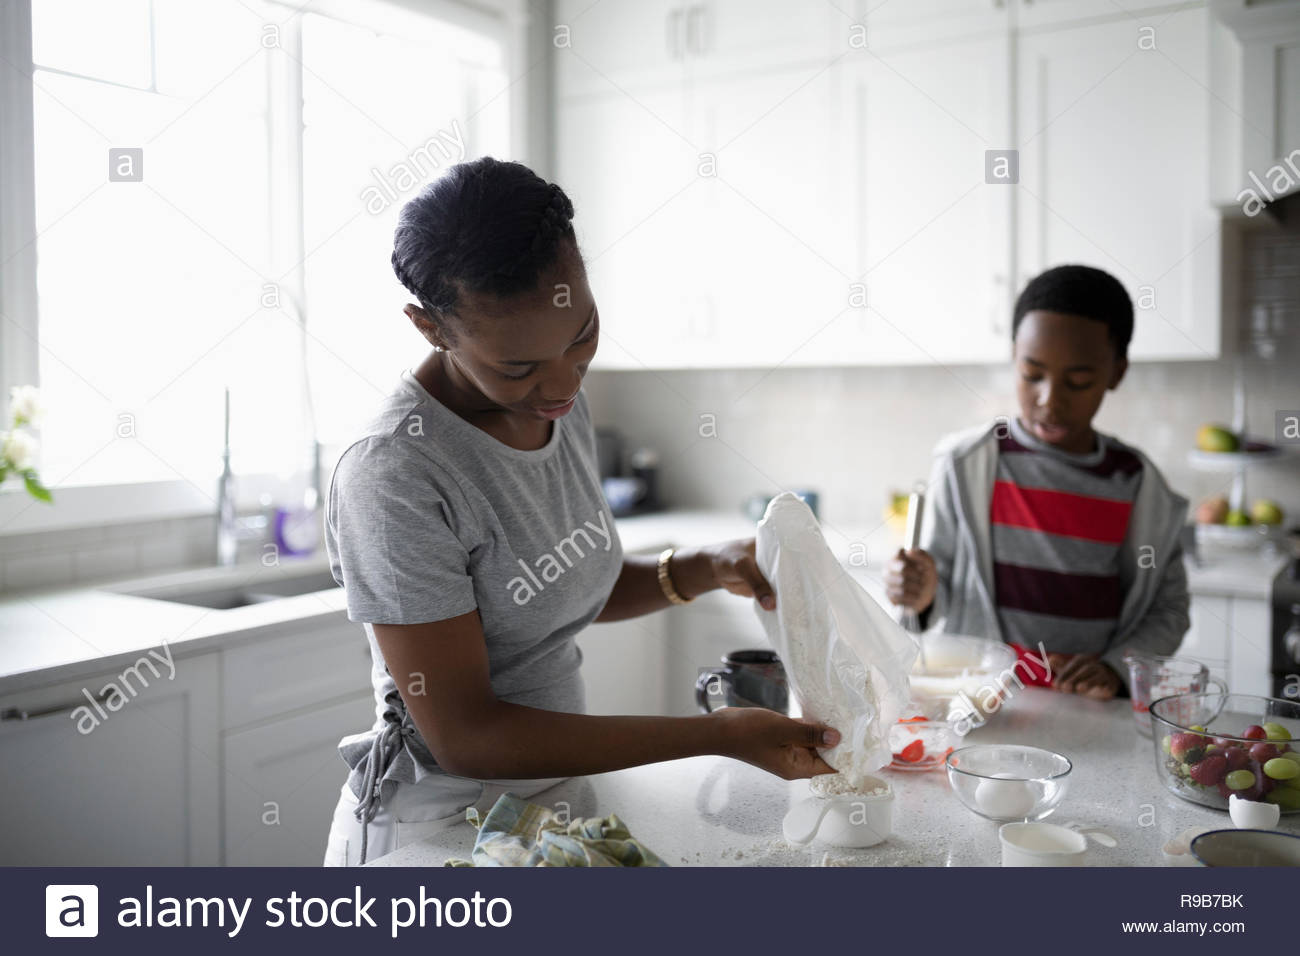 Mother and son baking in kitchen - Stock Image